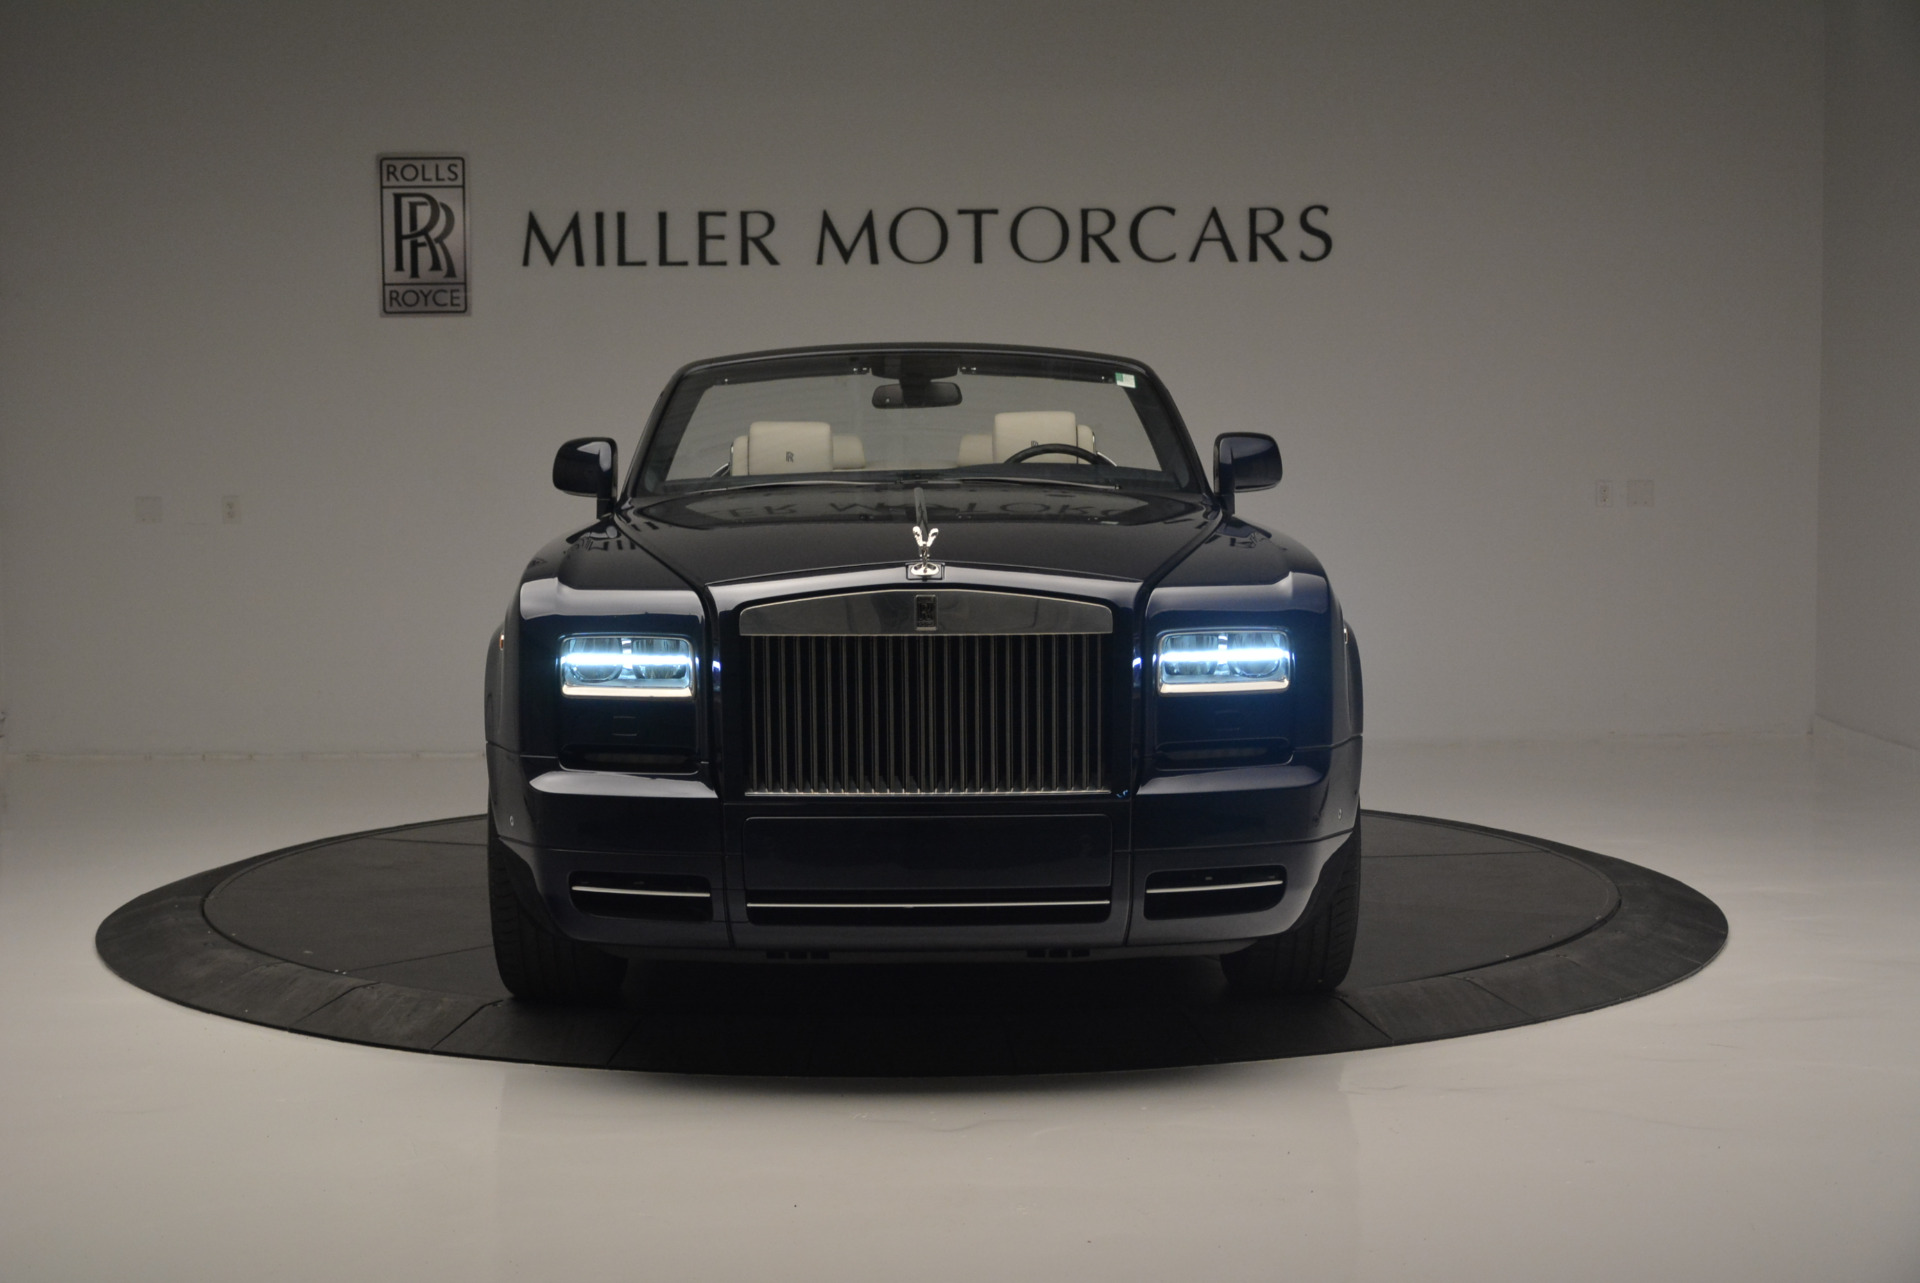 Used 2014 Rolls-Royce Phantom Drophead Coupe  For Sale In Greenwich, CT 2356_p8